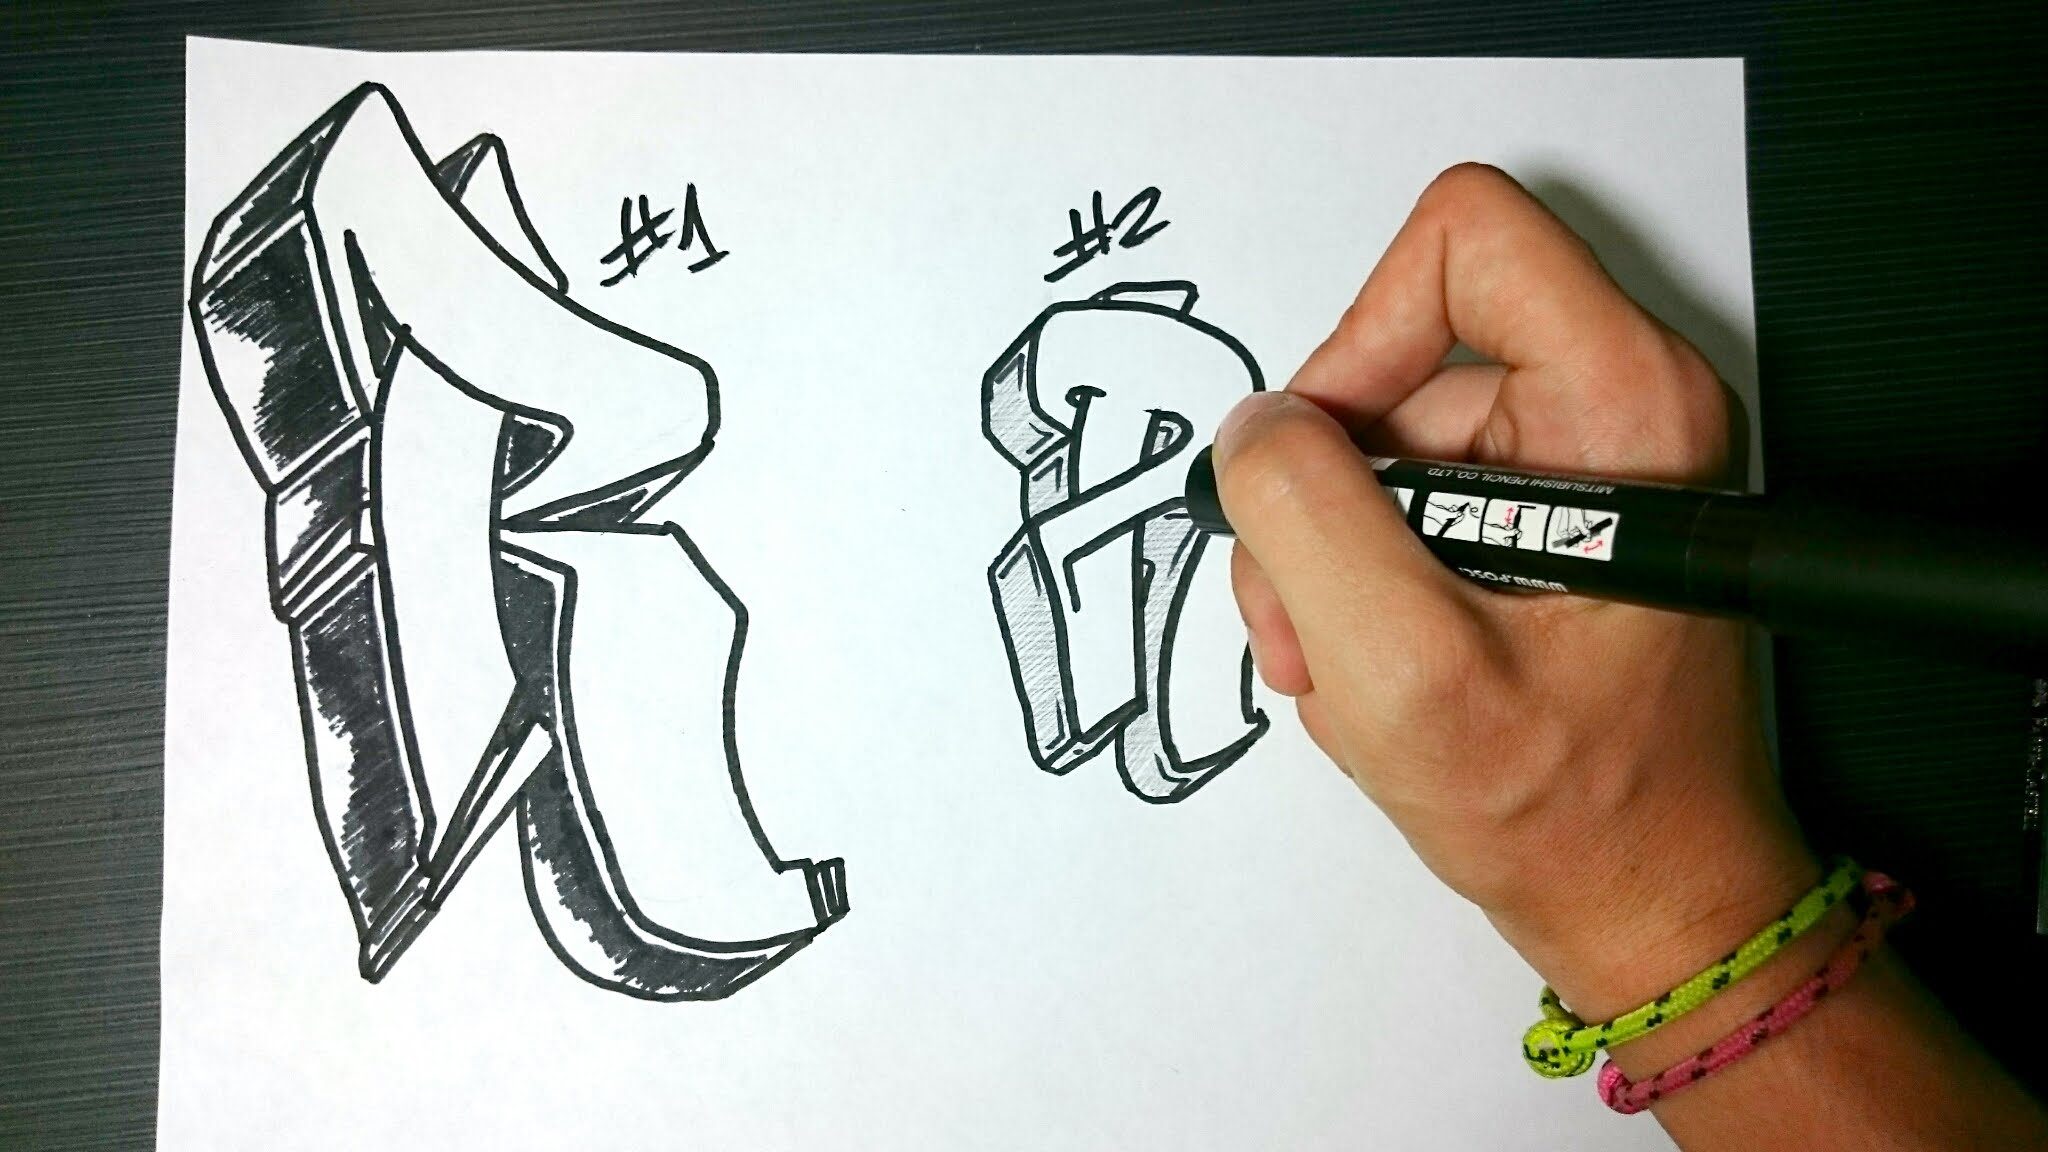 2048x1152 How To Draw Graffiti Letter R On Paper